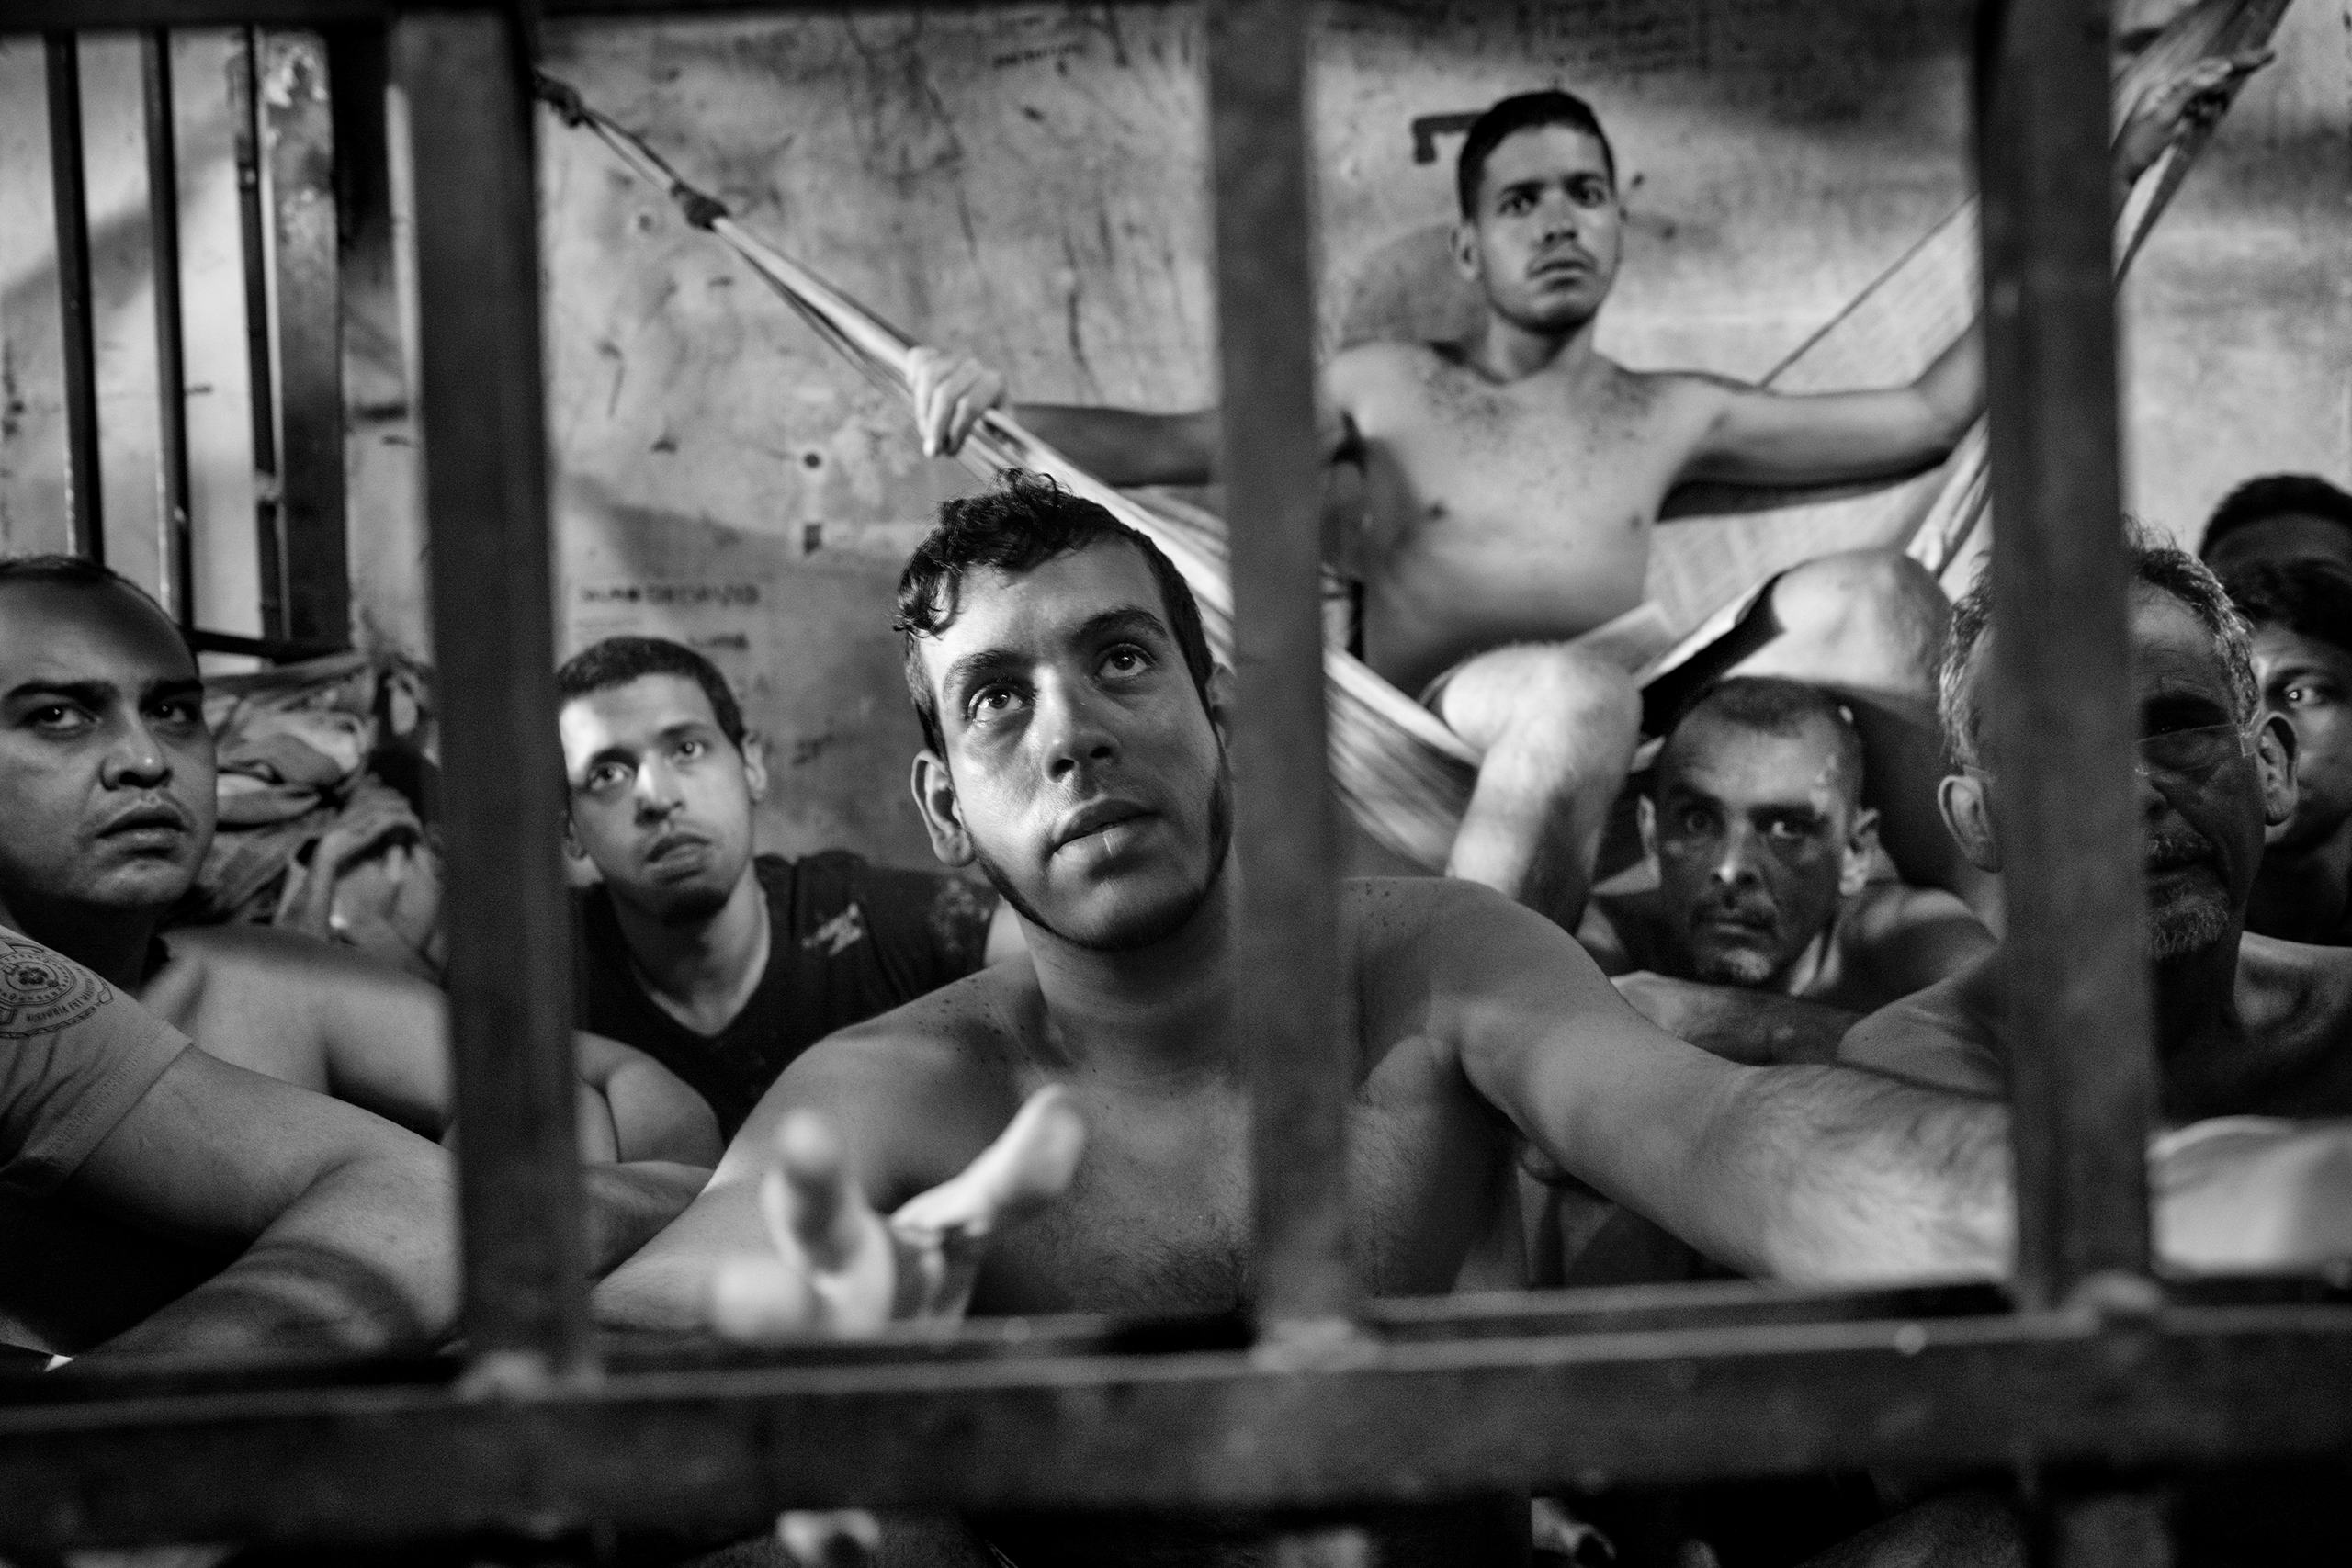 A group of prisoners sit in their cells inside the municipal police station of Chacao, located east of Caracas, Venezuela, May 27, 2016.